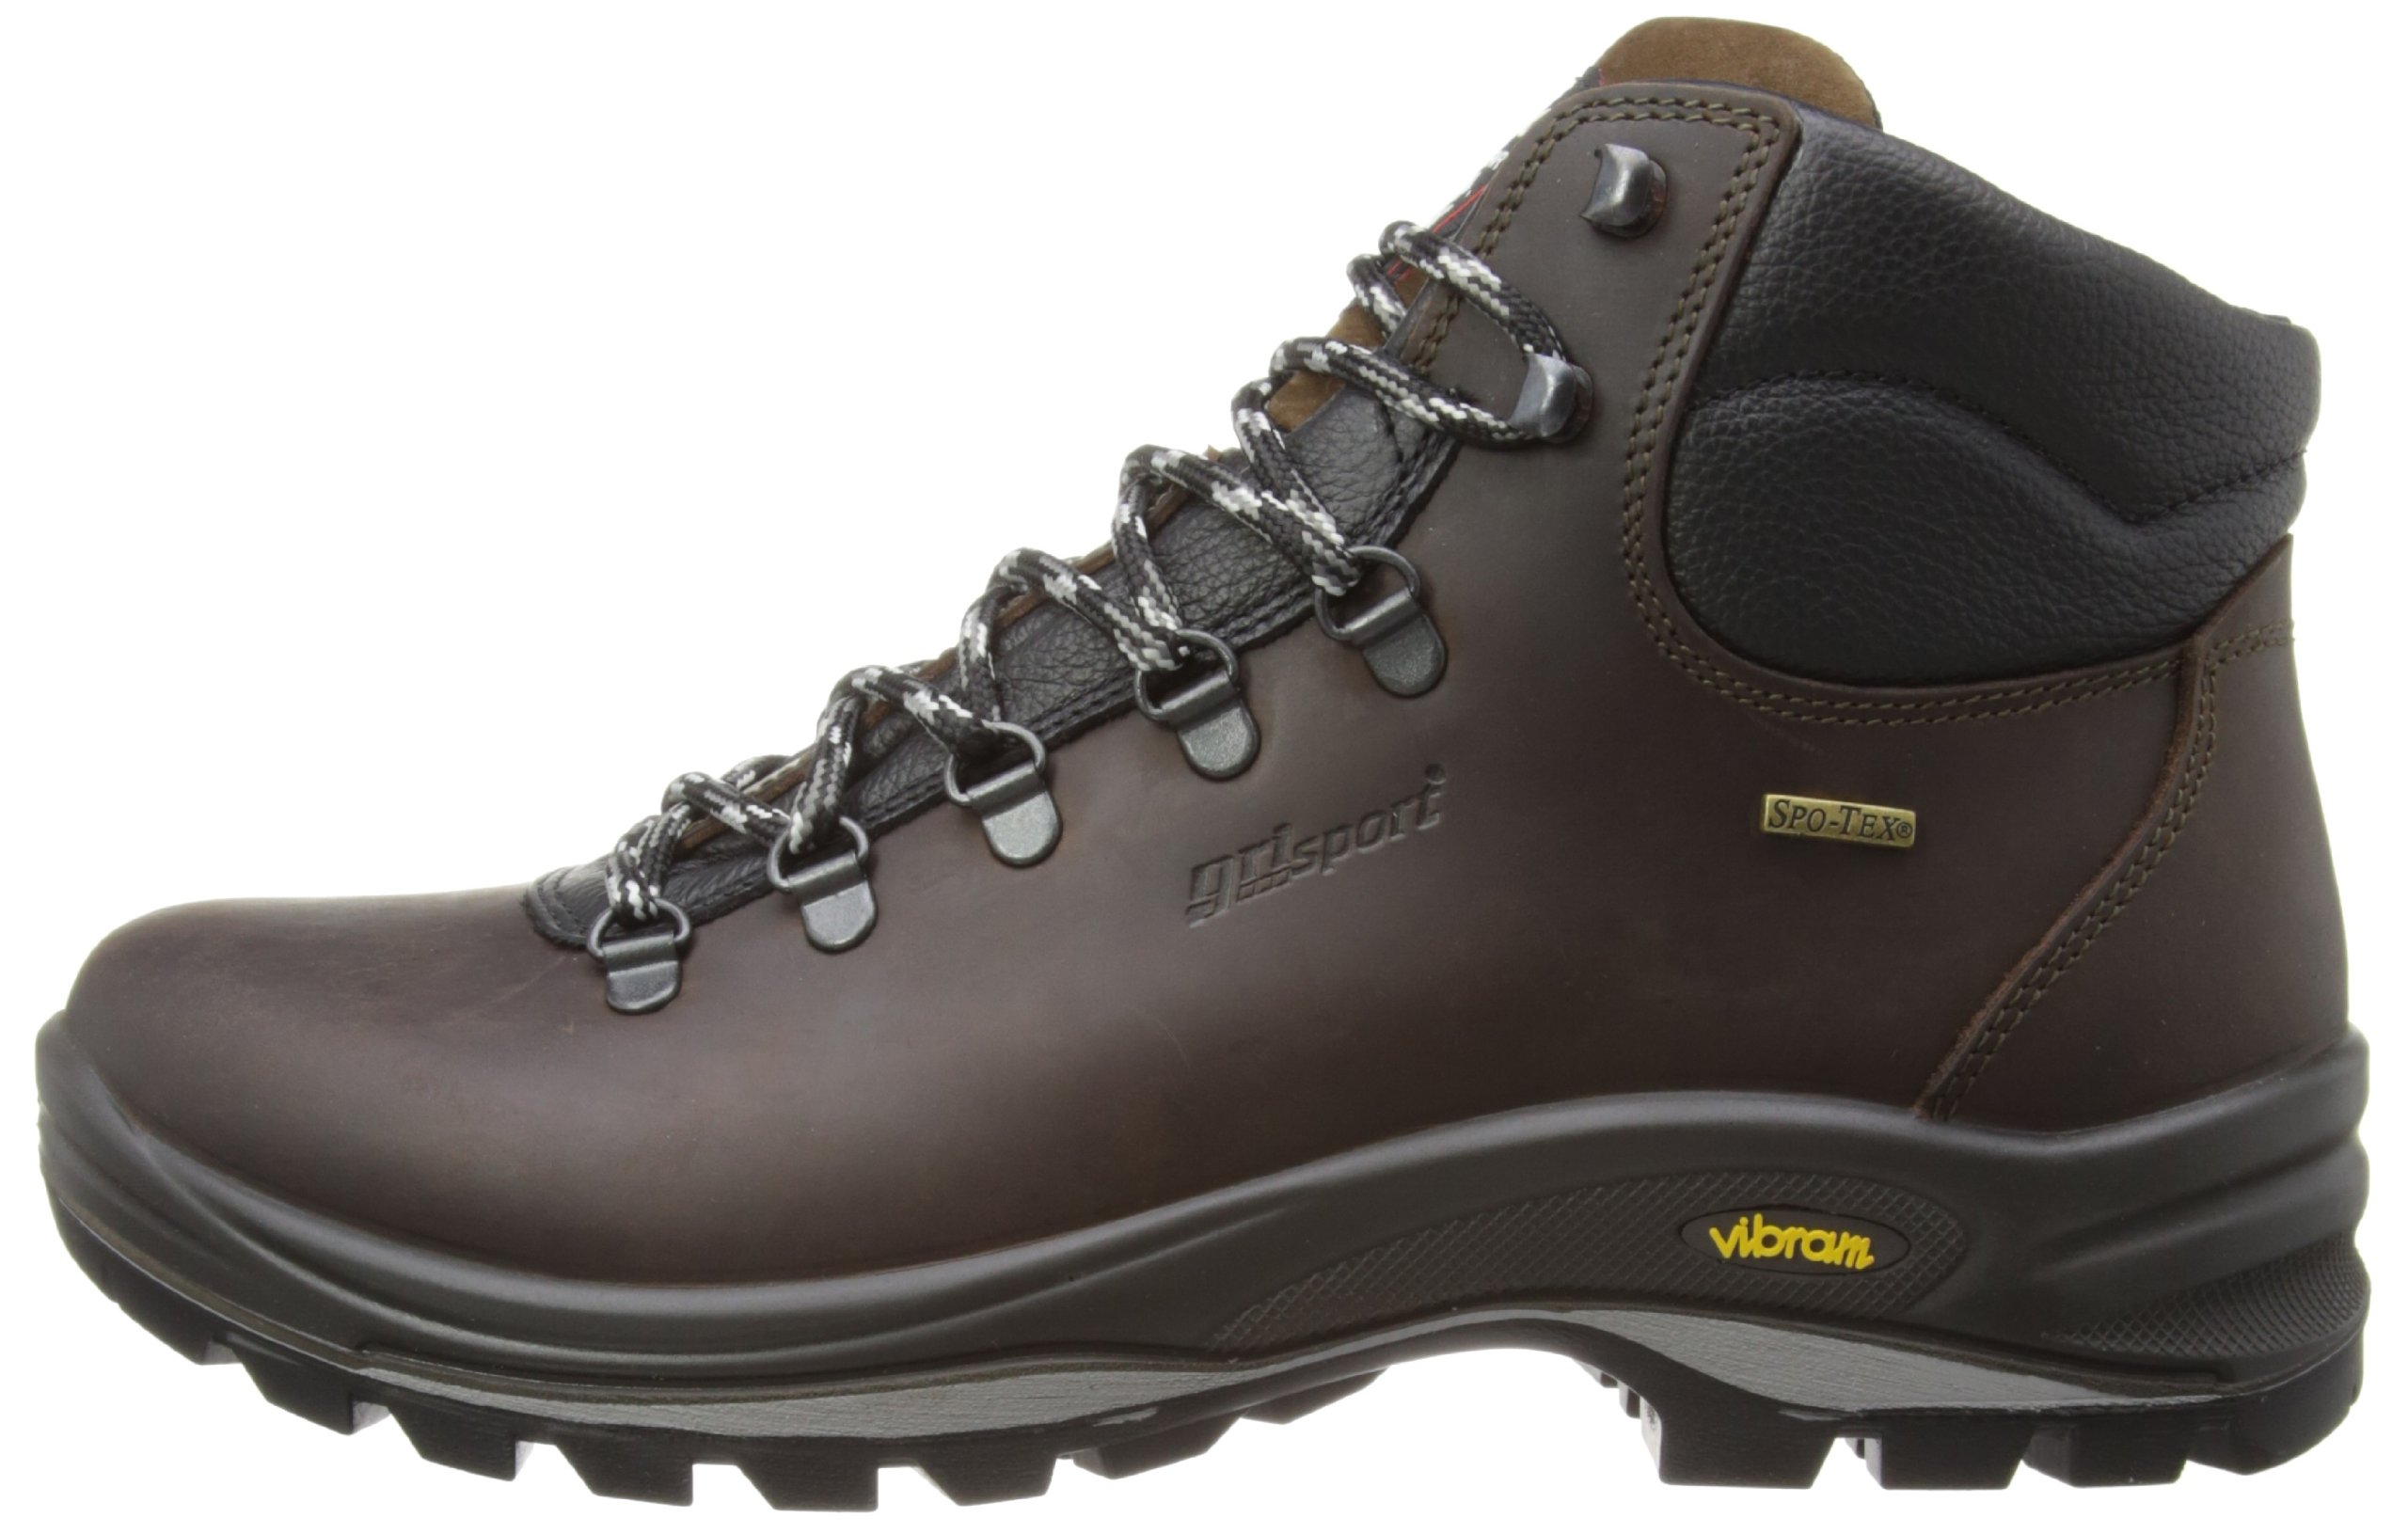 Grisport Unisex-Adult Fuse Trekking and Hiking Boots 5